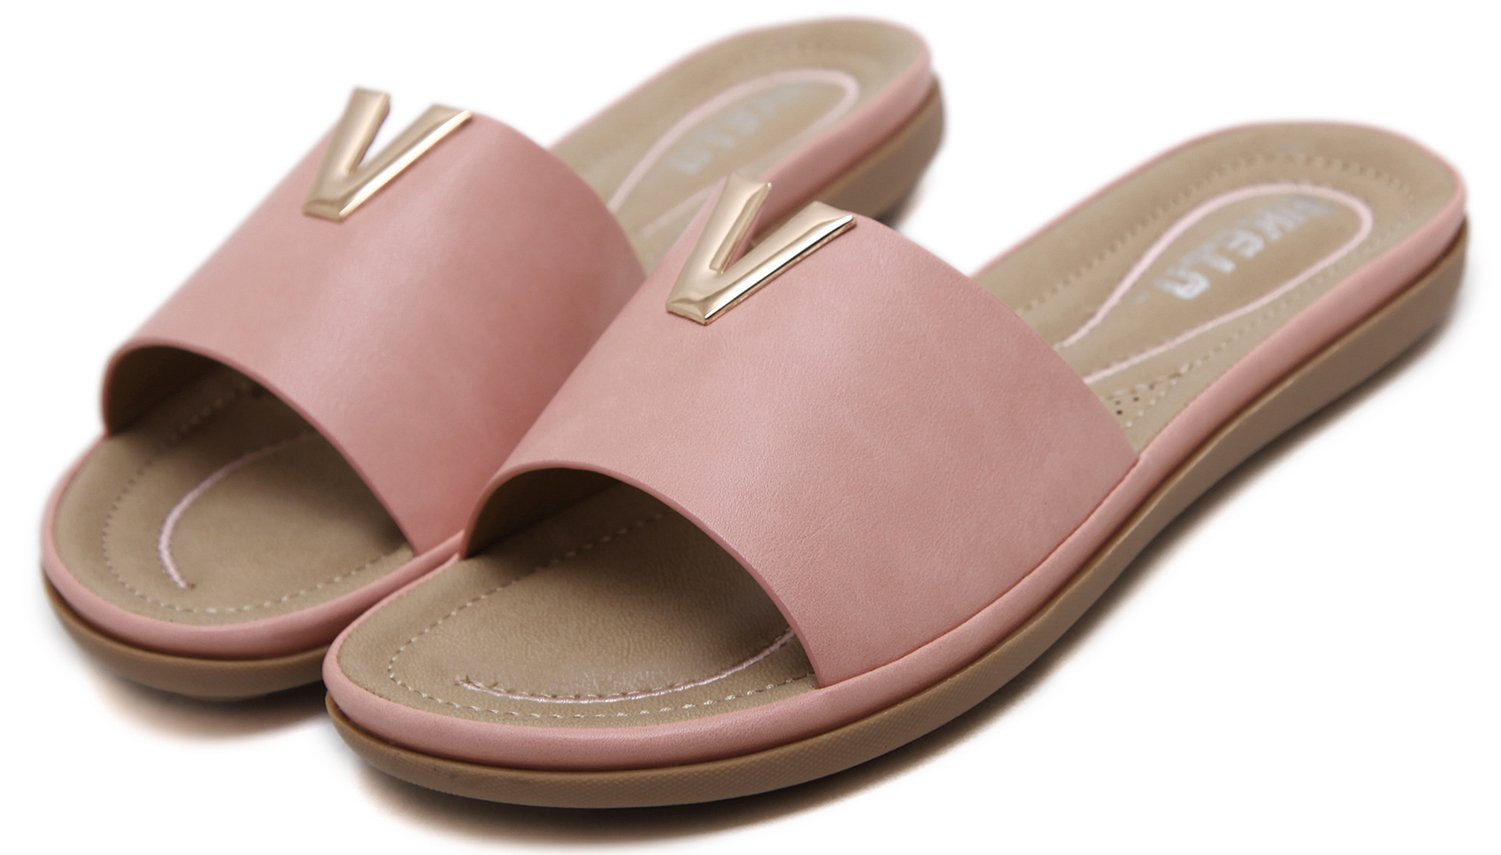 DolphinBanana Women's Comfy Slides Sandals Flat Slippers Soft Massage Padded Cushion Insole Breathable Design Glitter Gold V Stud, Pink Mules Clogs Anti Slip Gum Bubber Outsole